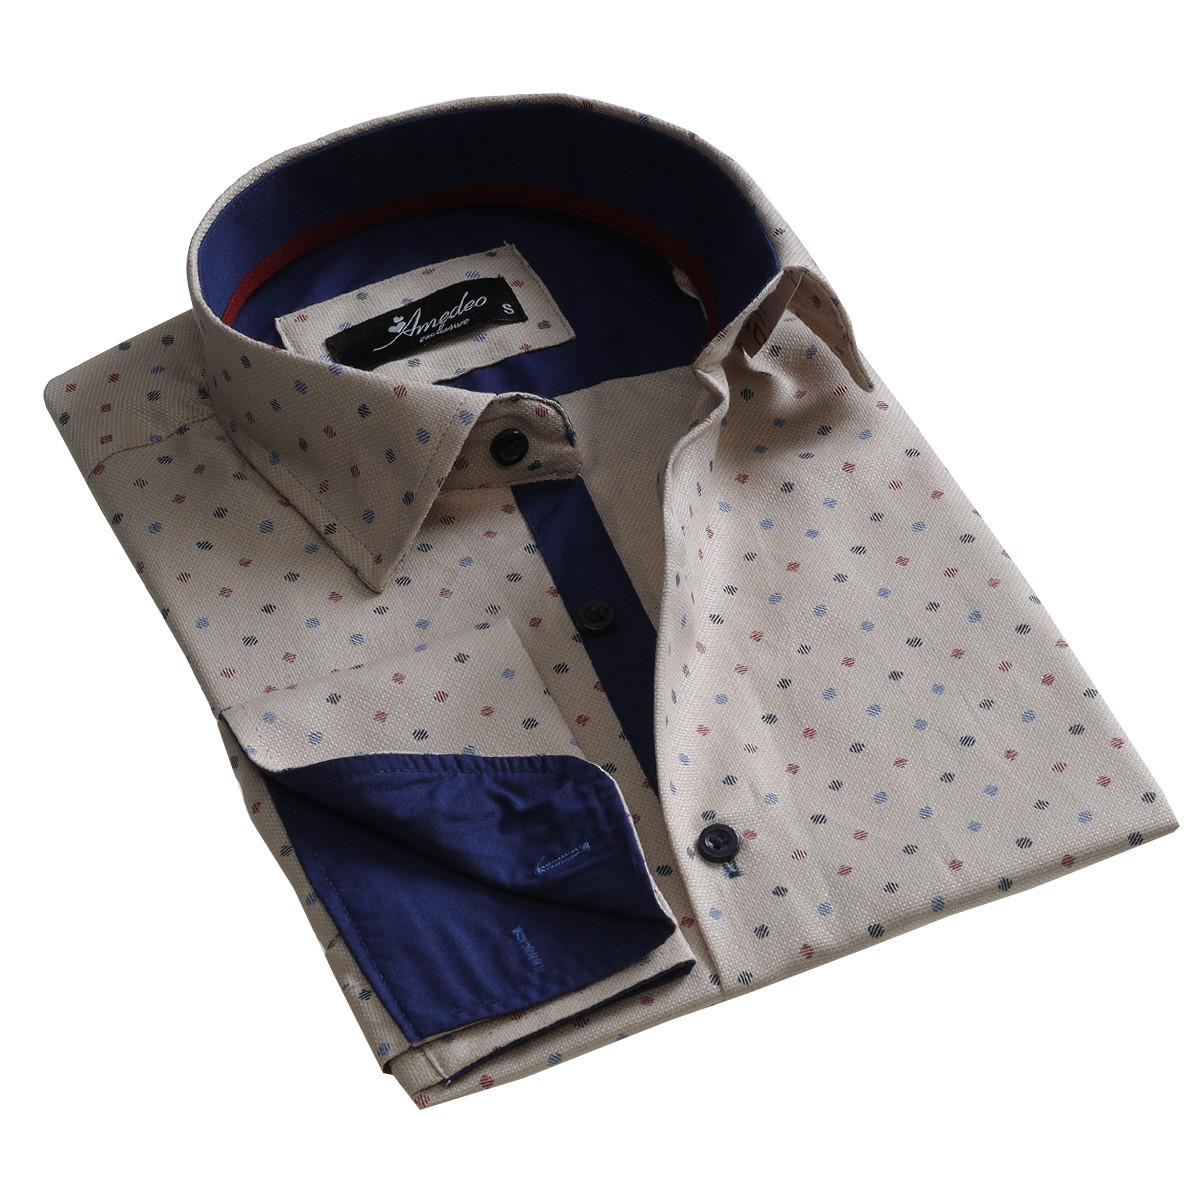 European Made & Designed Reversible Cuff Premium French Cuff Dress Shirt - cream